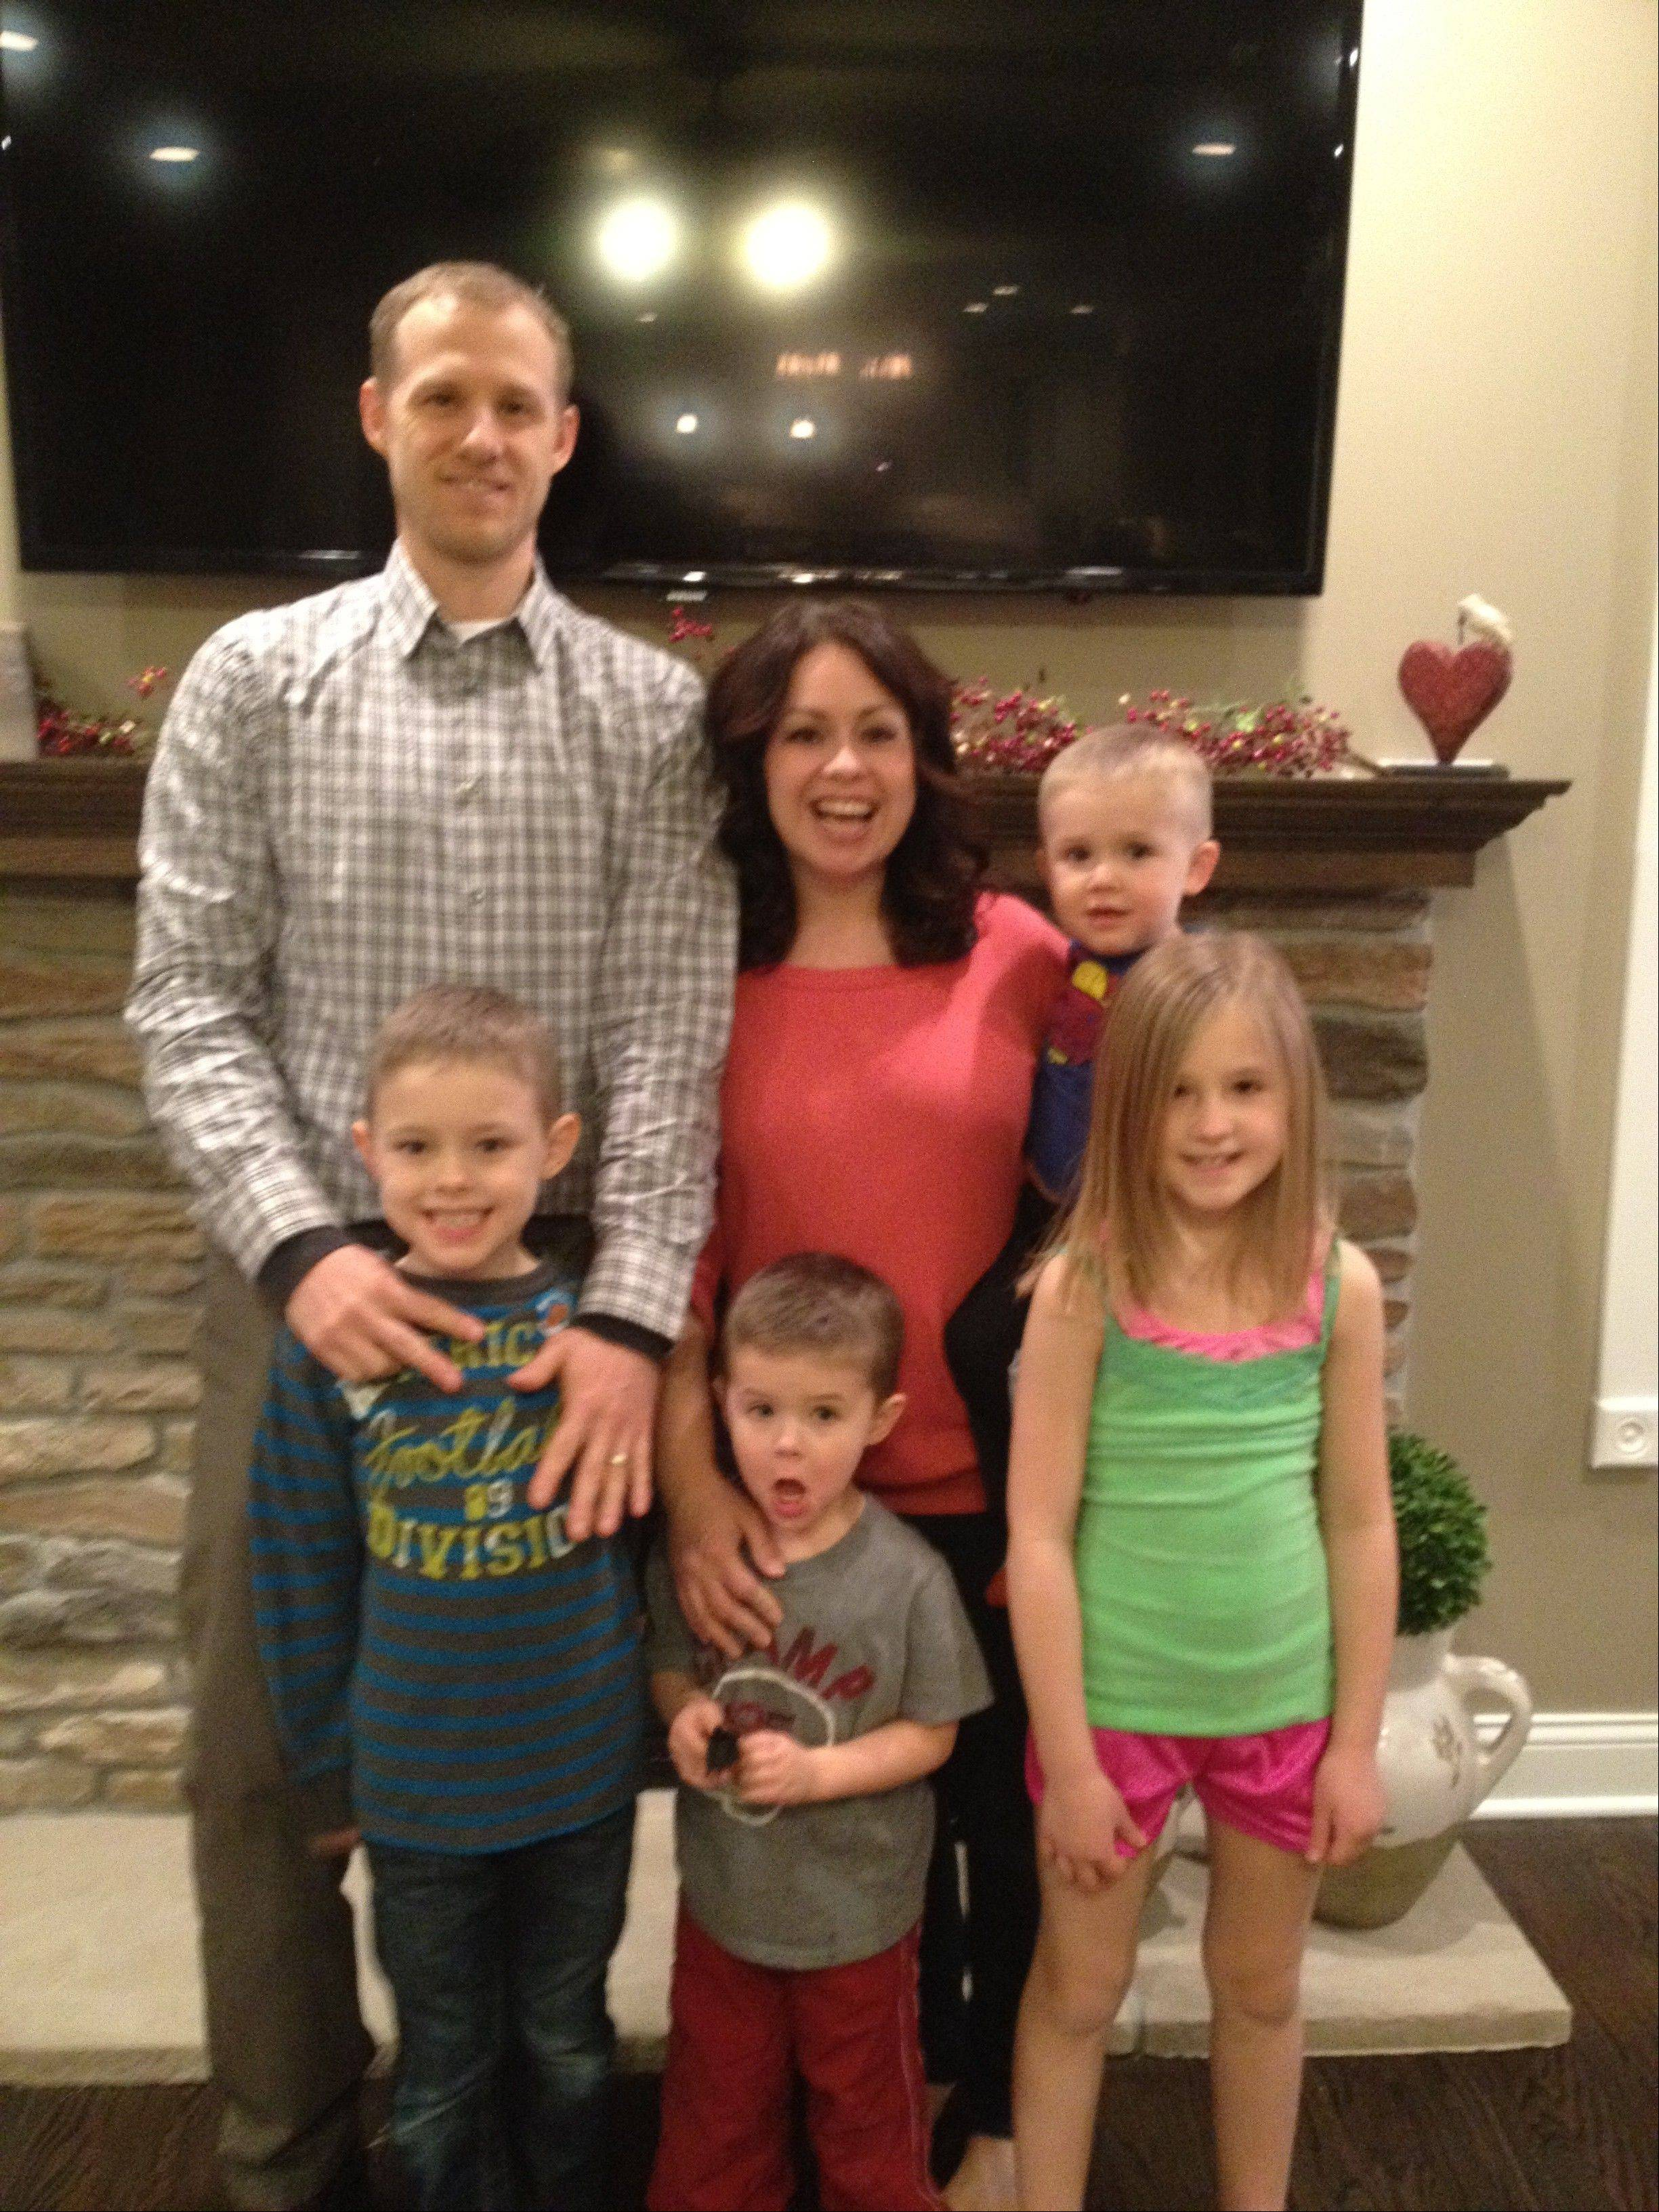 Quick thinking on the basketball court saved Matt Krueger�s life when he went into cardiac arrest March 2 in St. Charles. Krueger, 36, of Genoa, is pictured with his wife, Marina, and their children Sydney, 9, John, 7, Cole, 4, and Caleb, 2.